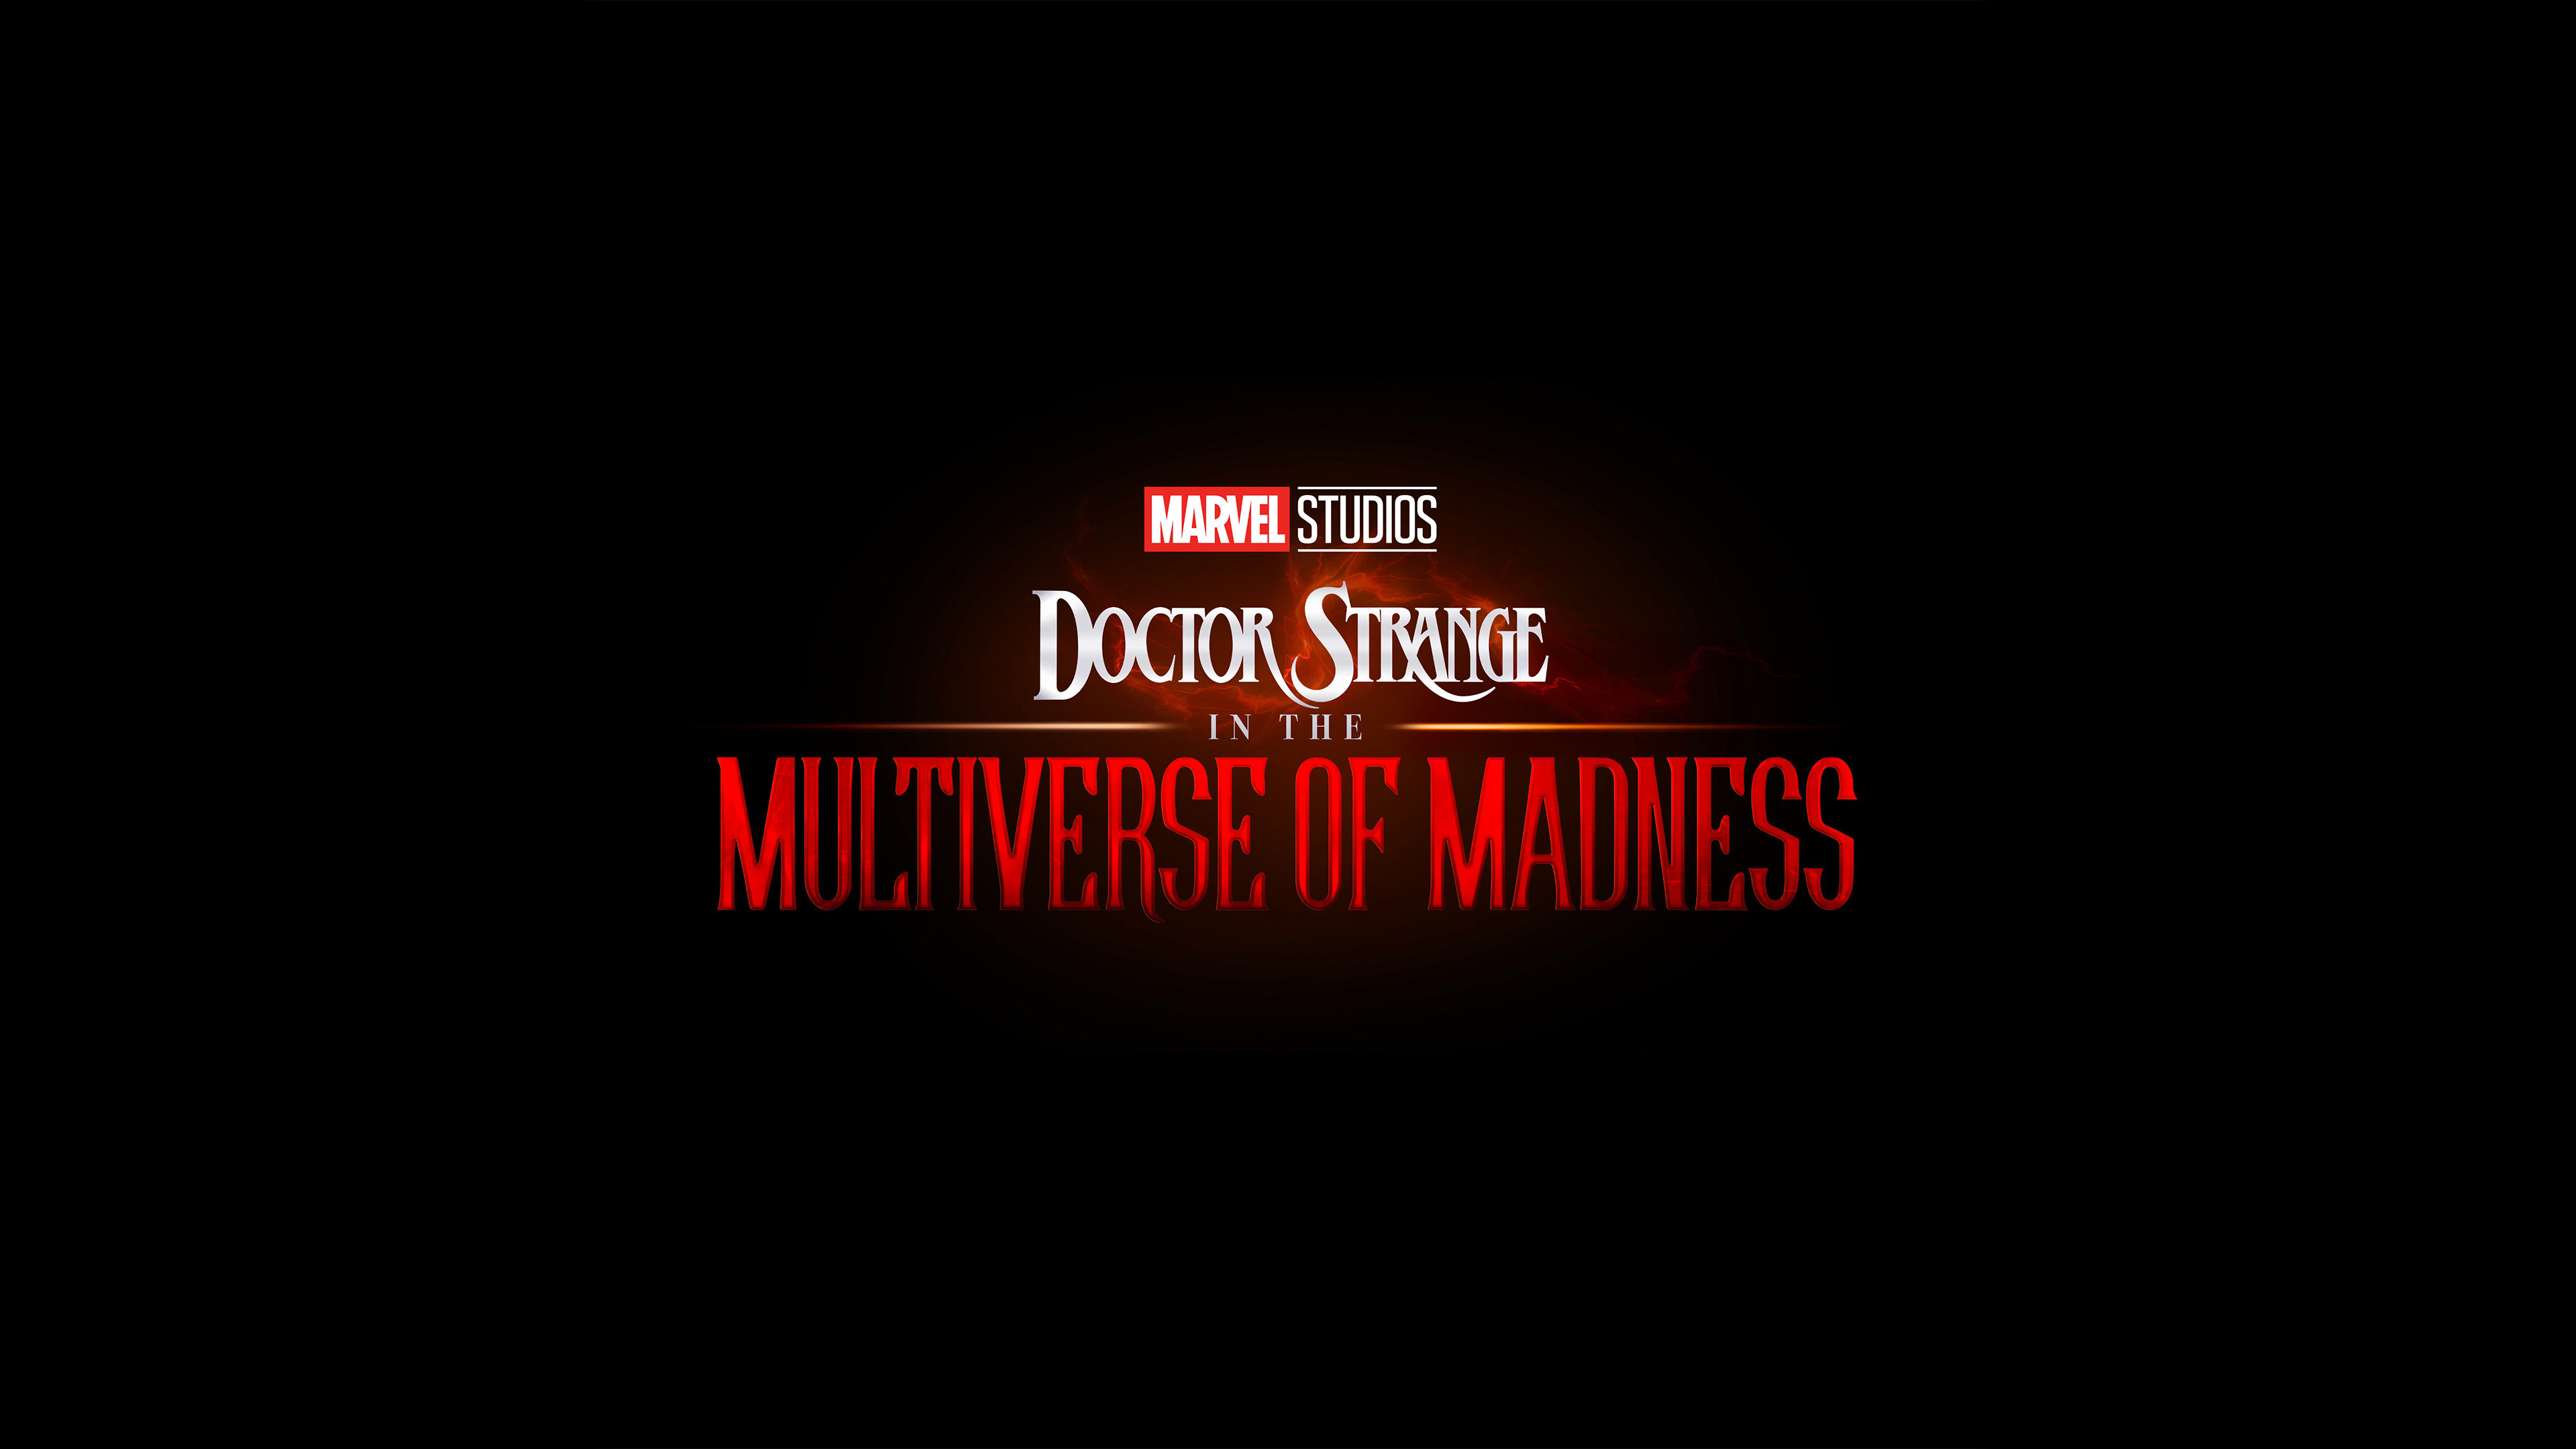 doctor strange in the multiverse of madness 1565055666 - Doctor Strange In The Multiverse Of Madness - movies wallpapers, hd-wallpapers, doctor strange in the multiverse of madness wallpapers, 4k-wallpapers, 2021 movies wallpapers